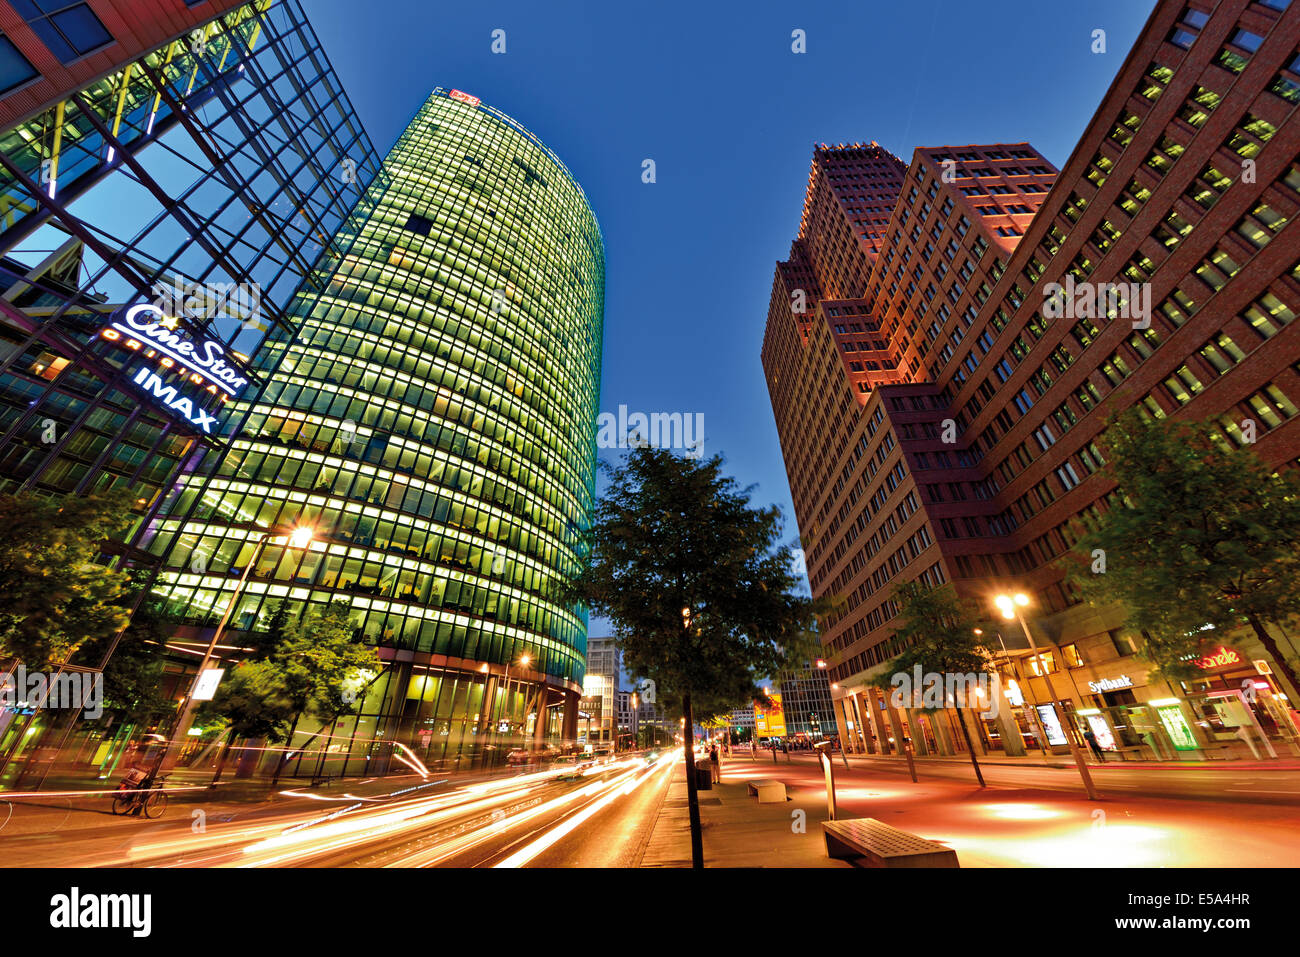 Germany, Berlin: Nocturnal view of the Potsdam Square (Potsdamer Platz) - Stock Image